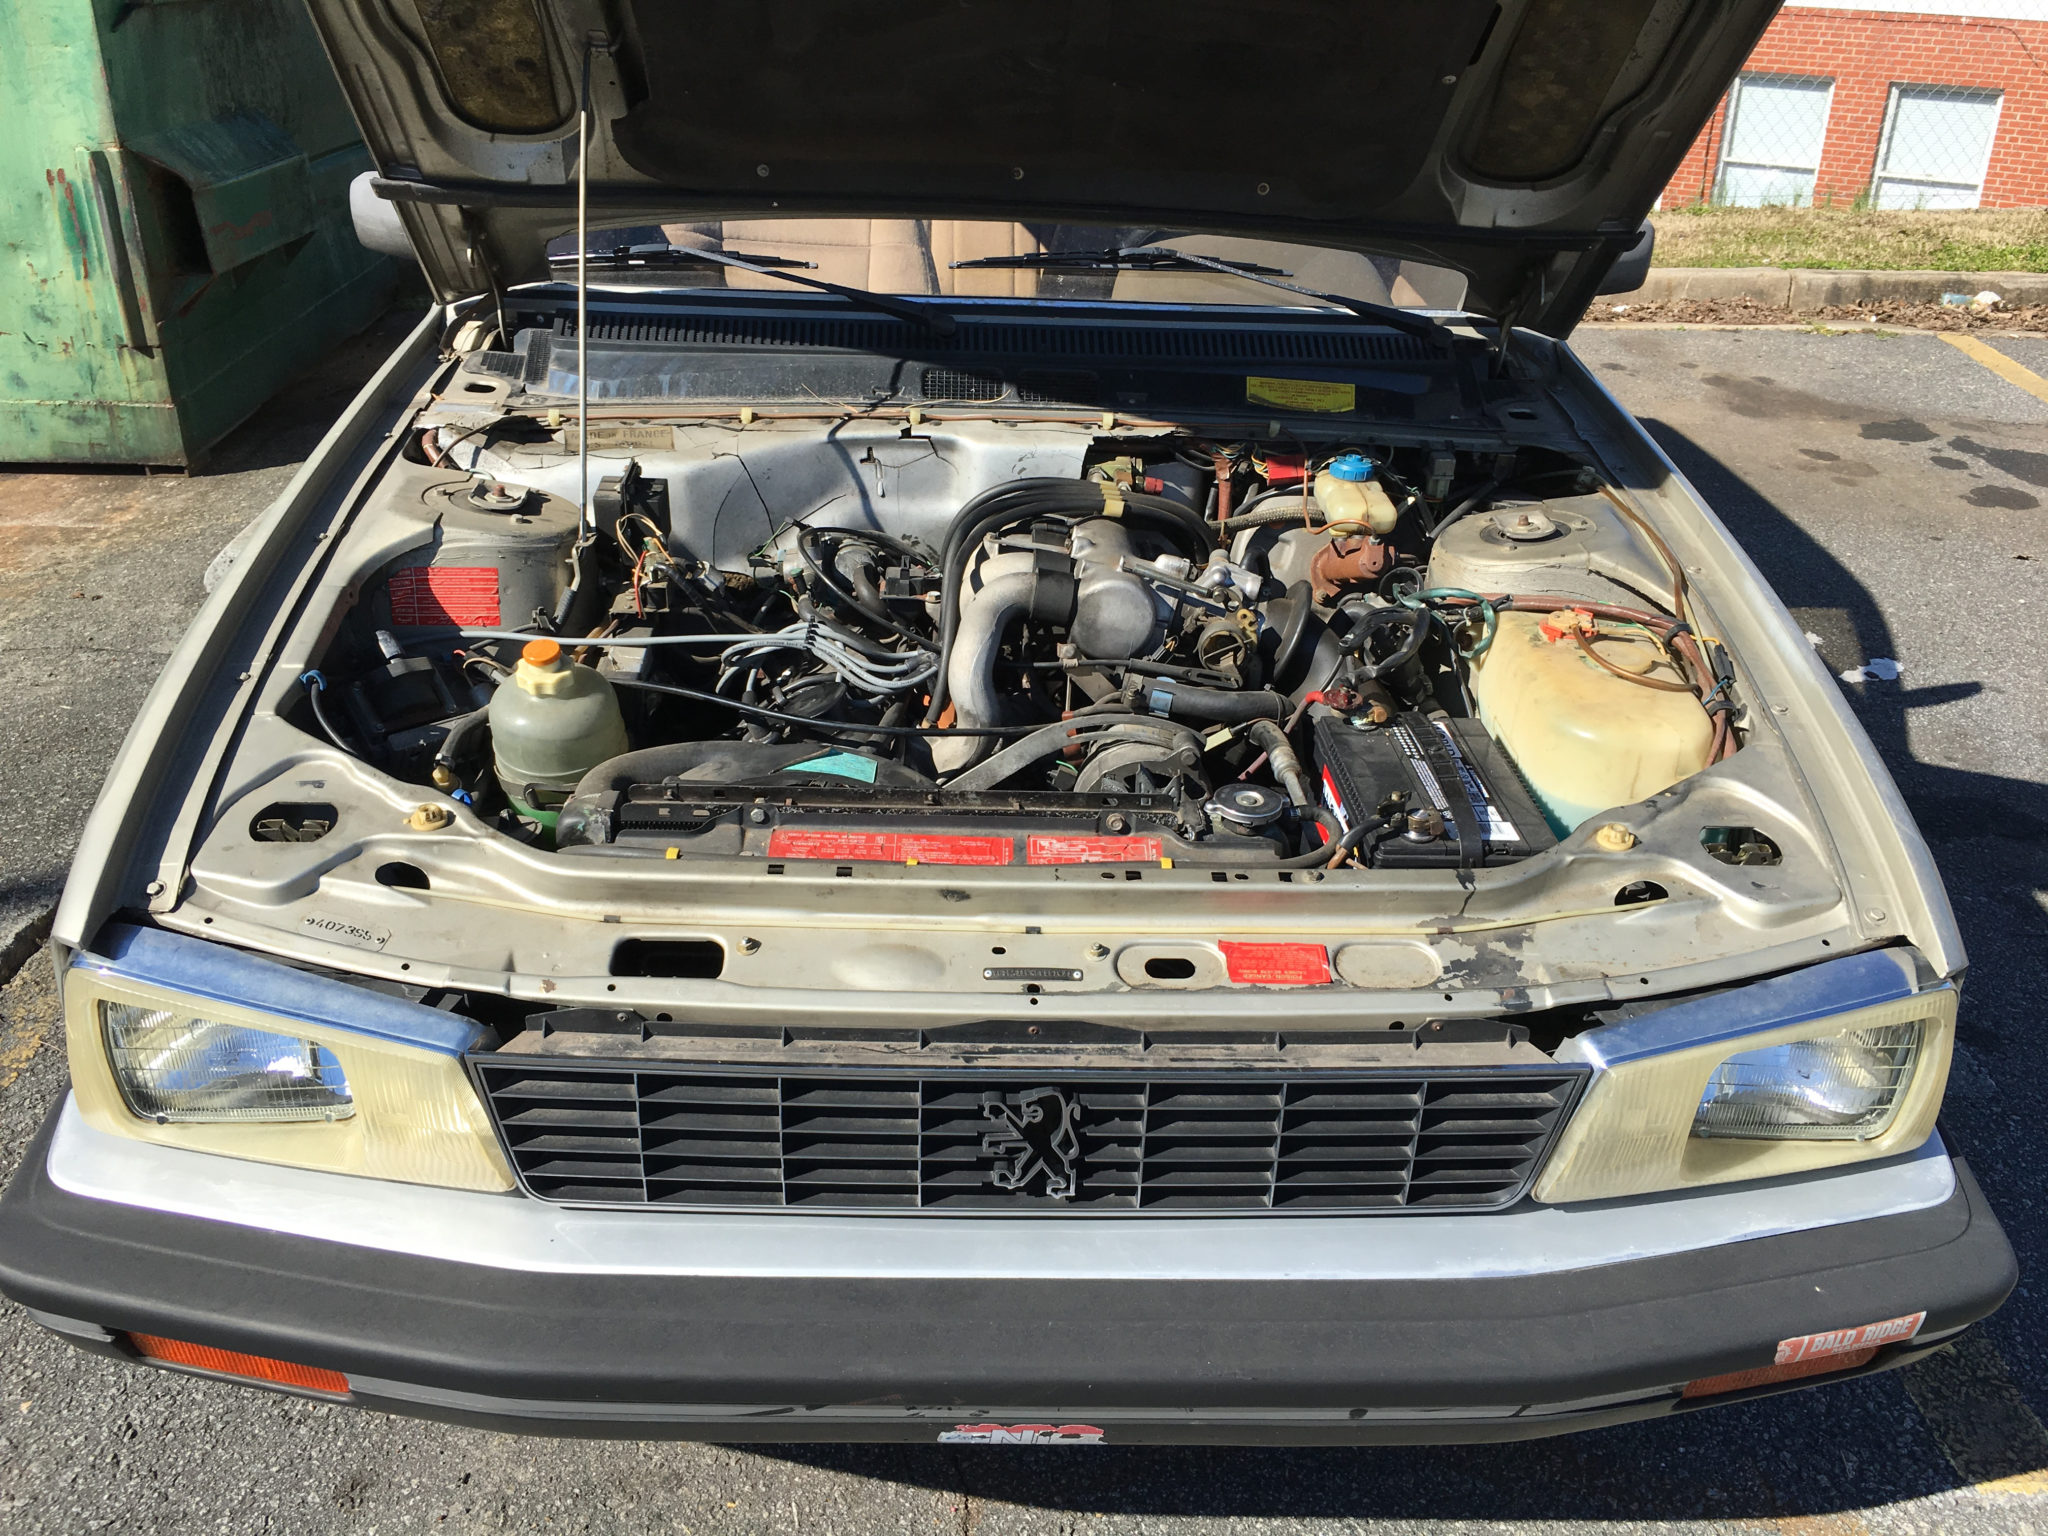 Peugeot 505 S Engine bay